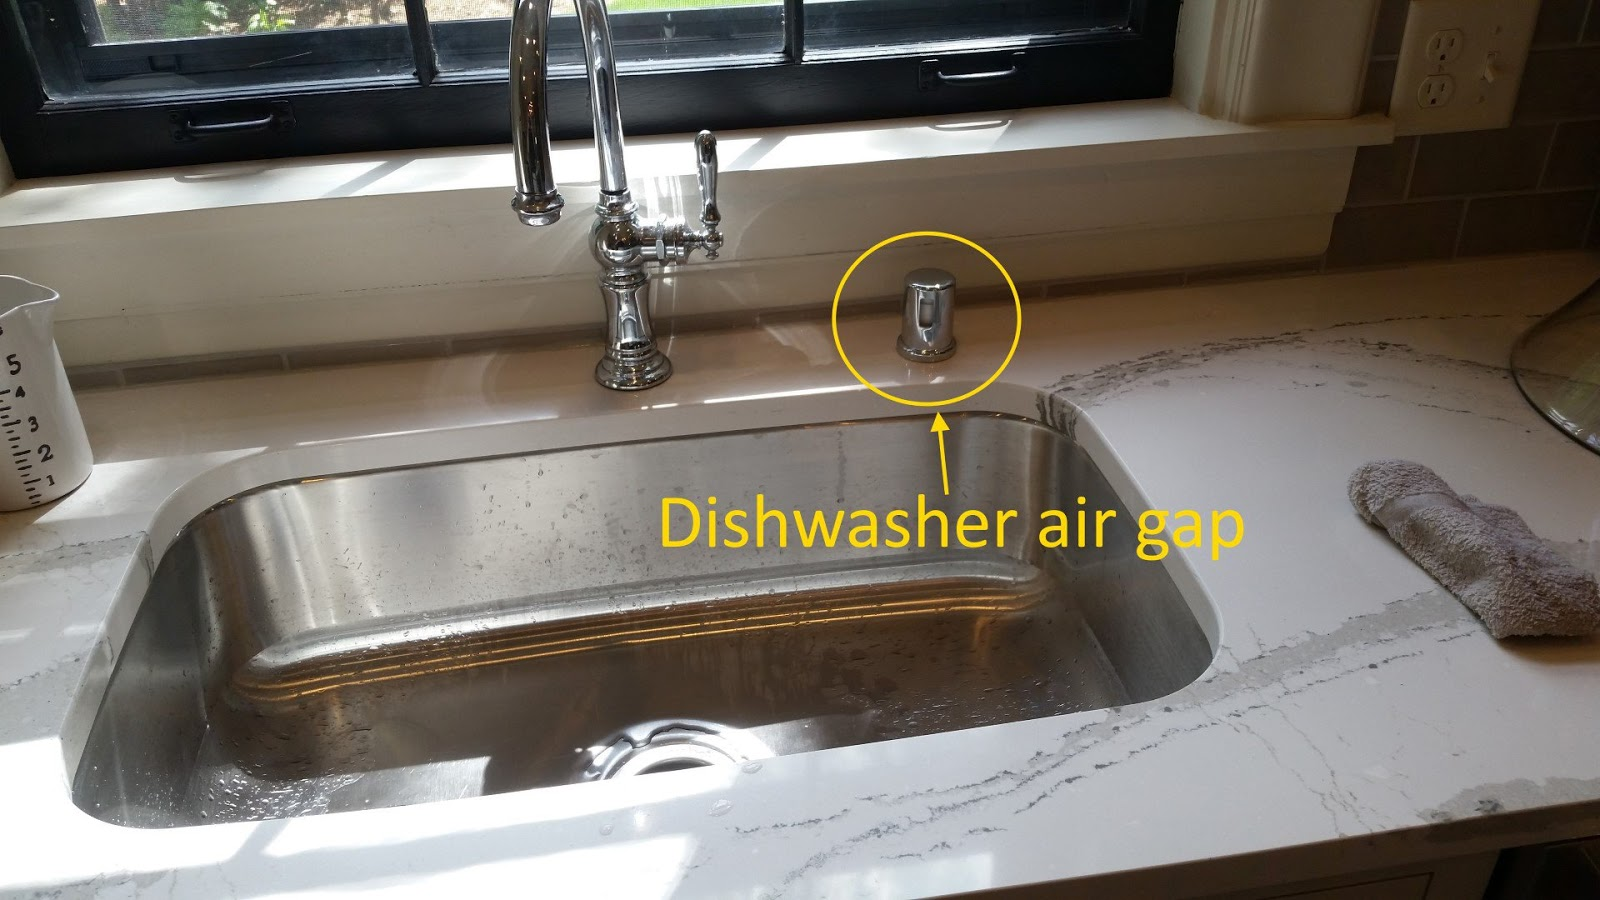 Dishwasher Air Gap Installation Diagram Msd Ignition Wiring Diagrams And Technotes Tywkiwdbi Quottai Wiki Widbee Quot Quotdishwasher Explained